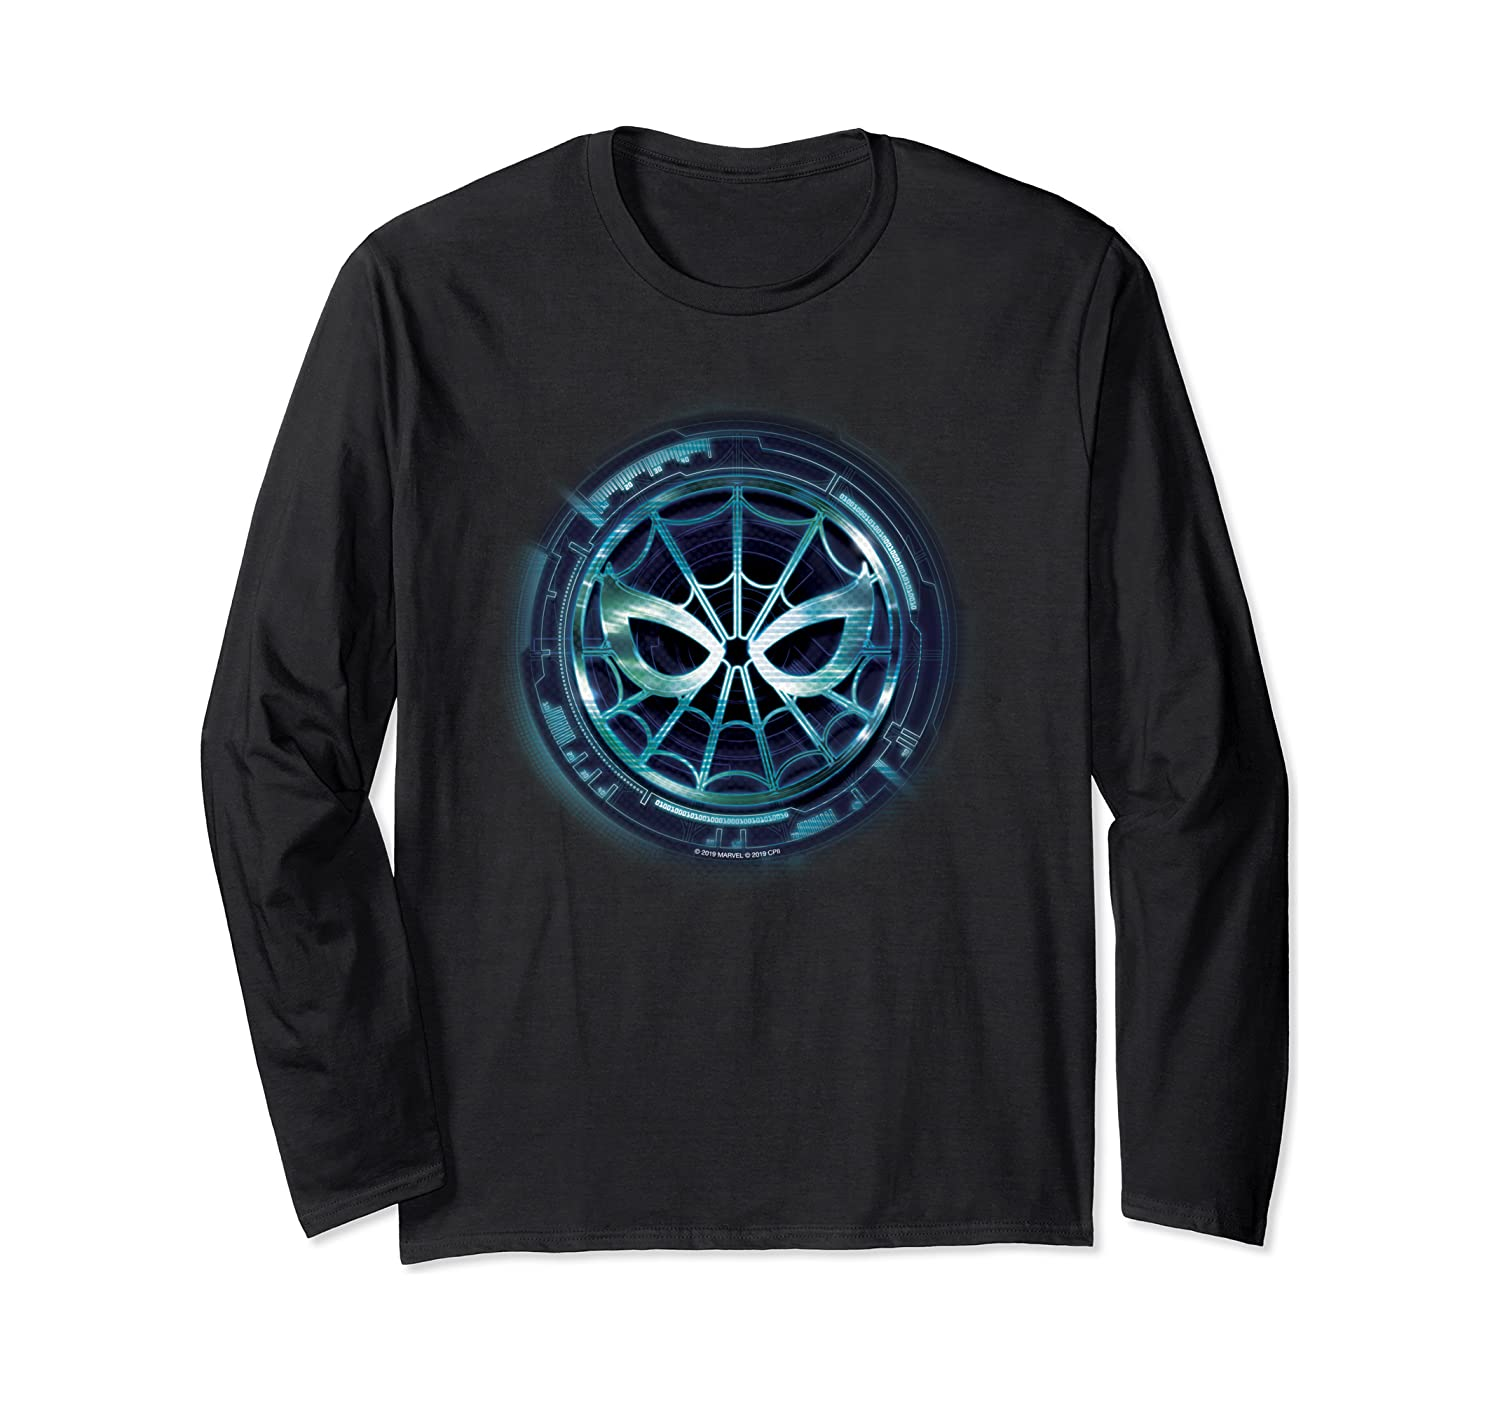 Marvel Spider-Man: Far from Home Chest Emblem Long Sleeve T-Shirt